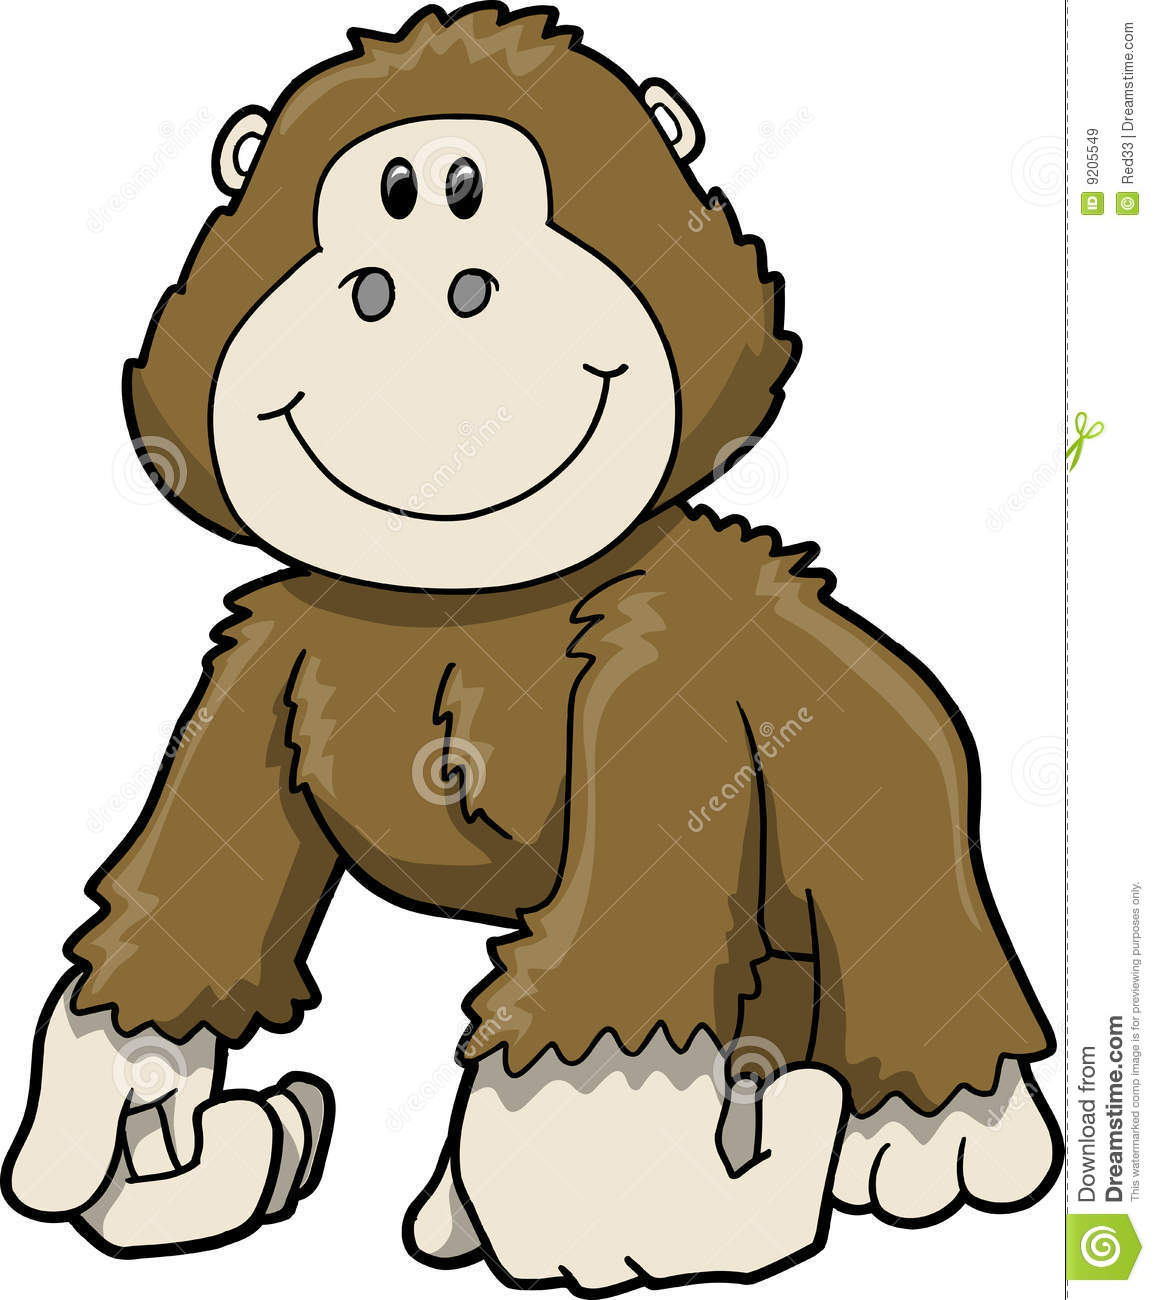 Gorilla clipart #17, Download drawings